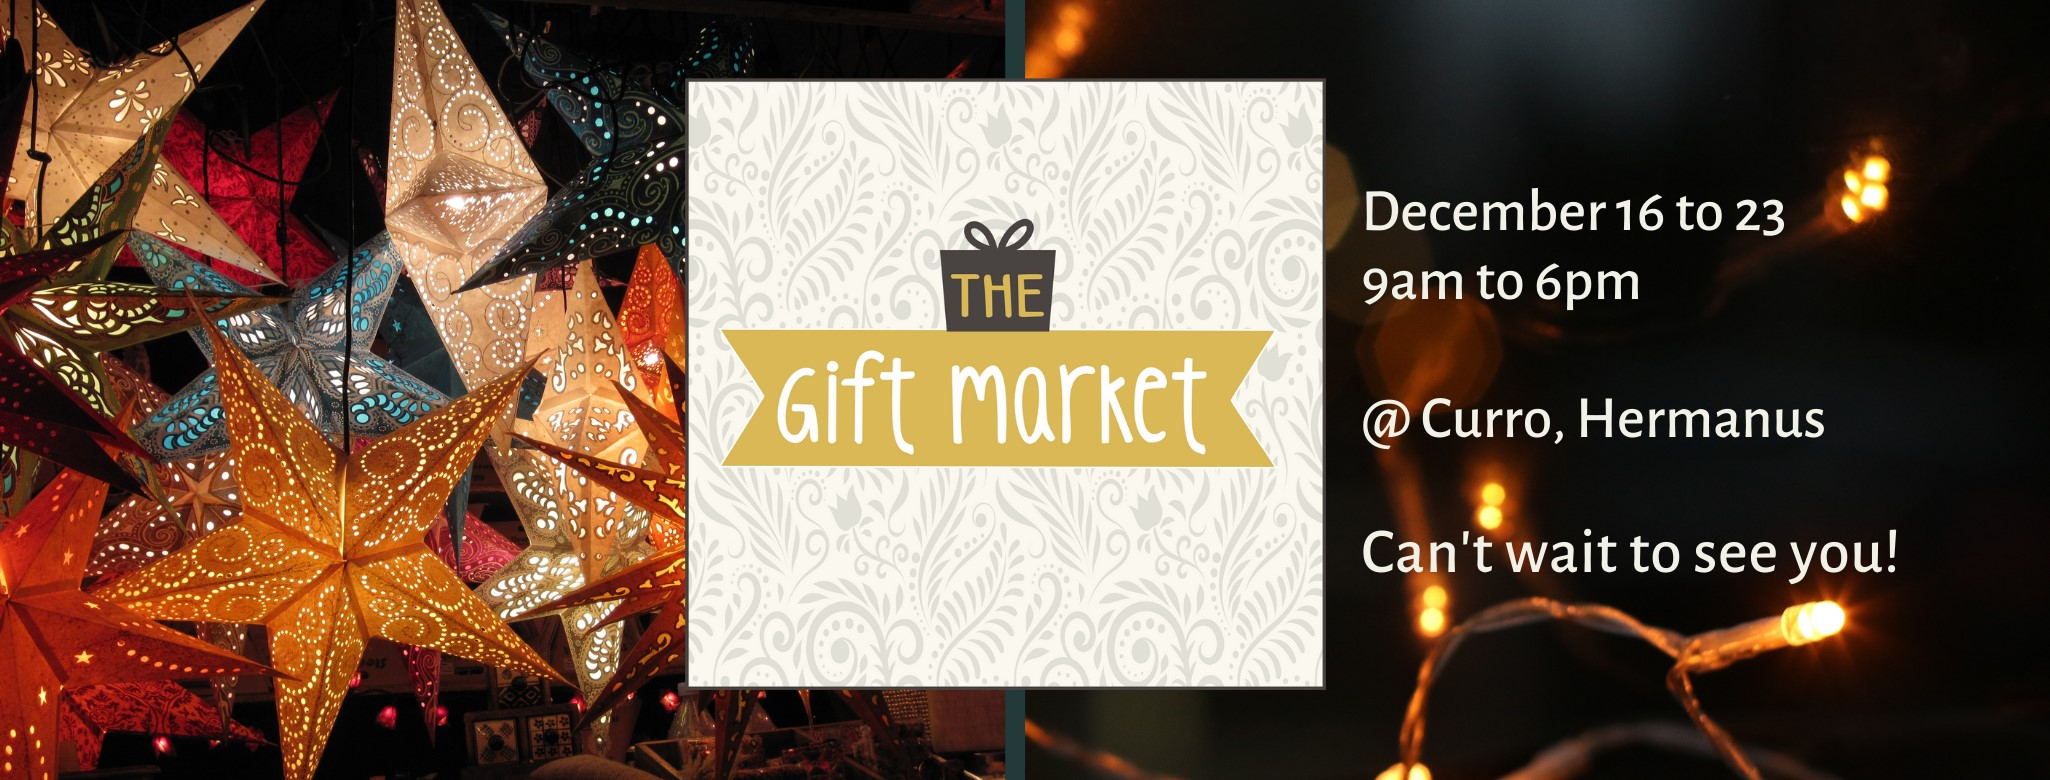 The Gift Market, Christmas shopping - 16th to 23rd DEC 2020 (9am to 6pm) - 100 exhibitors - at CURRO school, Hermanus